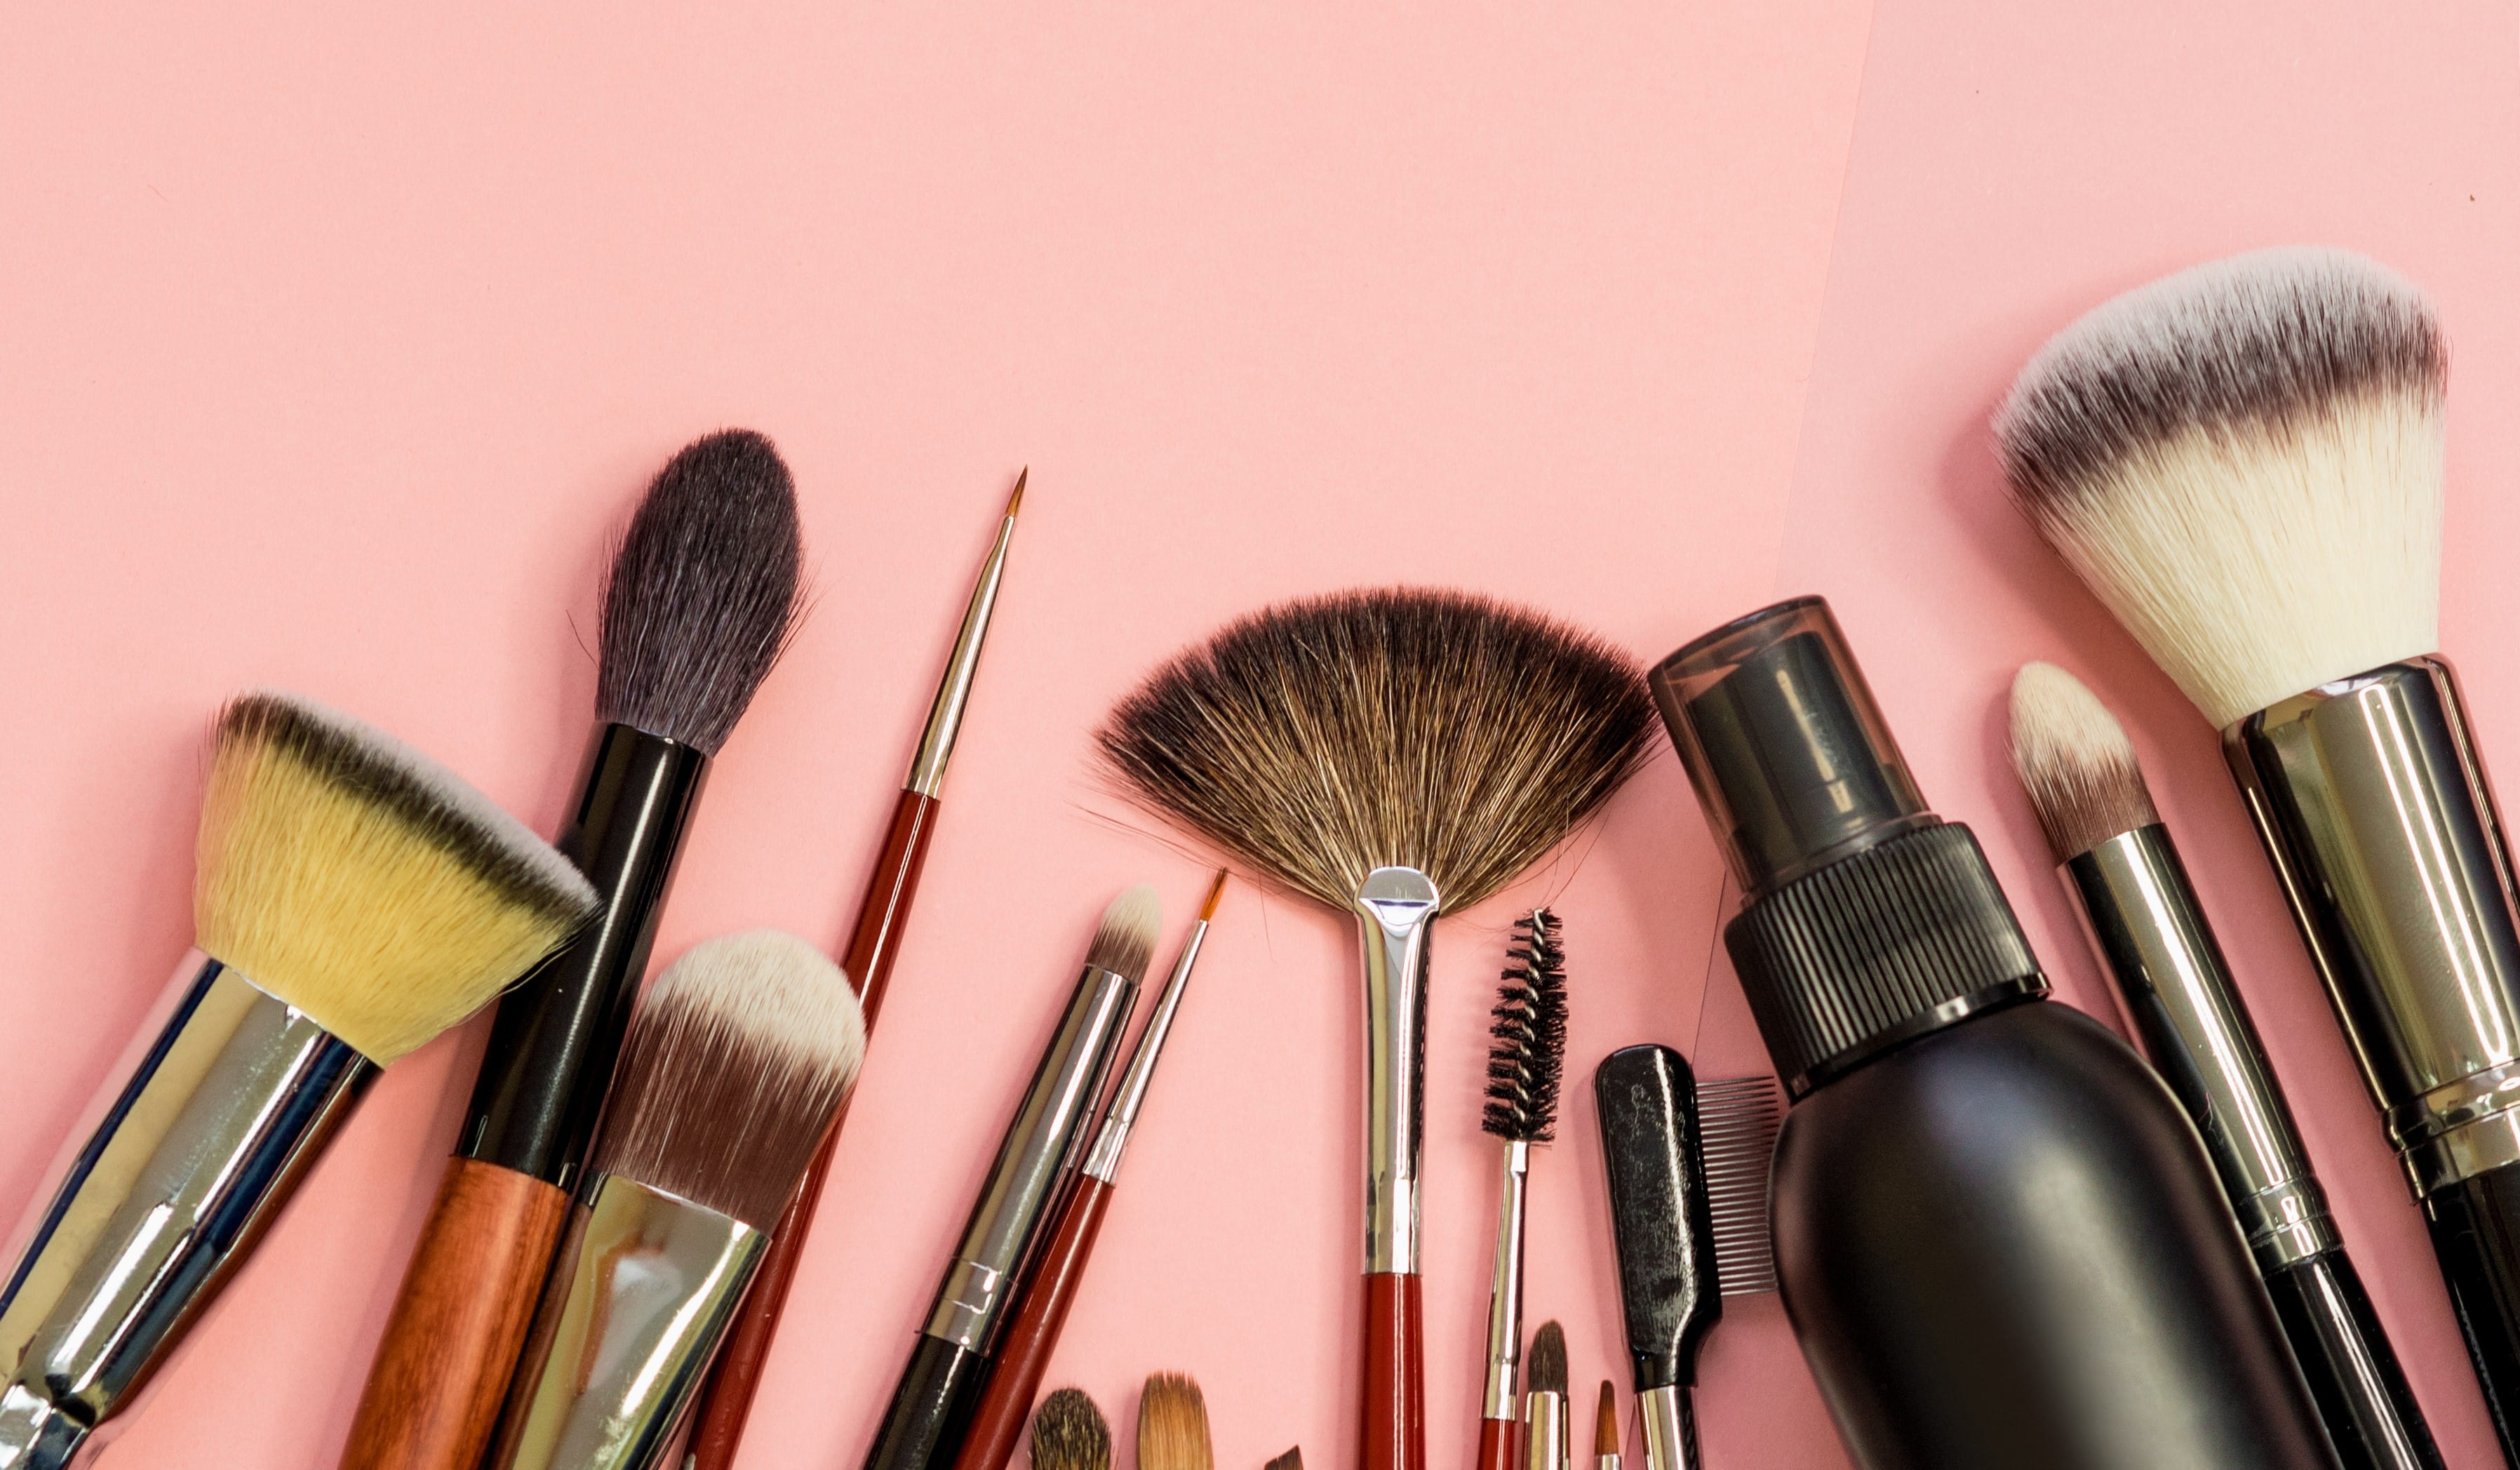 Clean Your Makeup Tools And Cosmetics